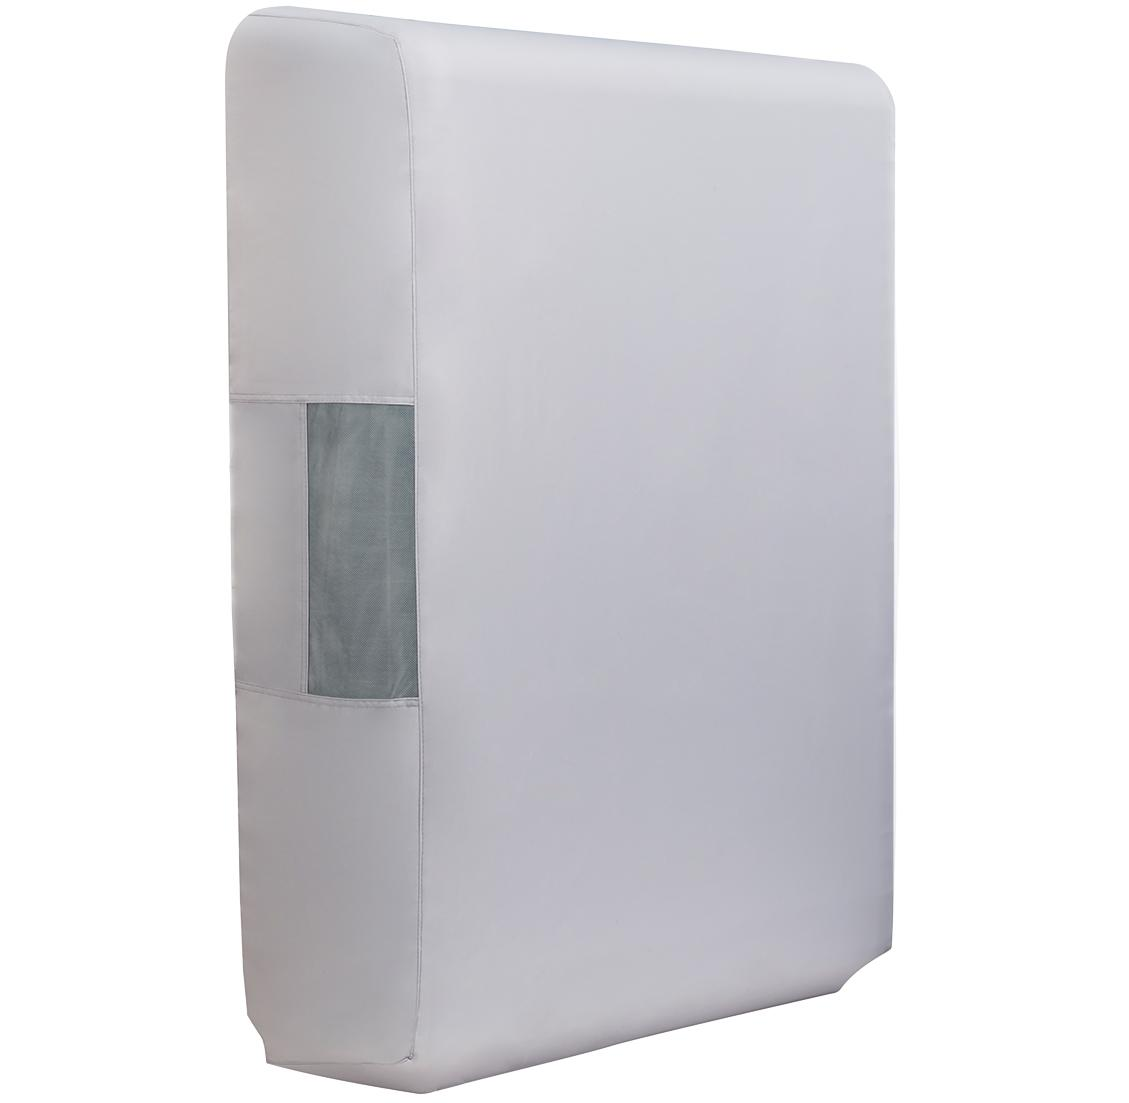 Mastercool exterior cooler cover home kitchen - Mastercool exterior cooler cover ...